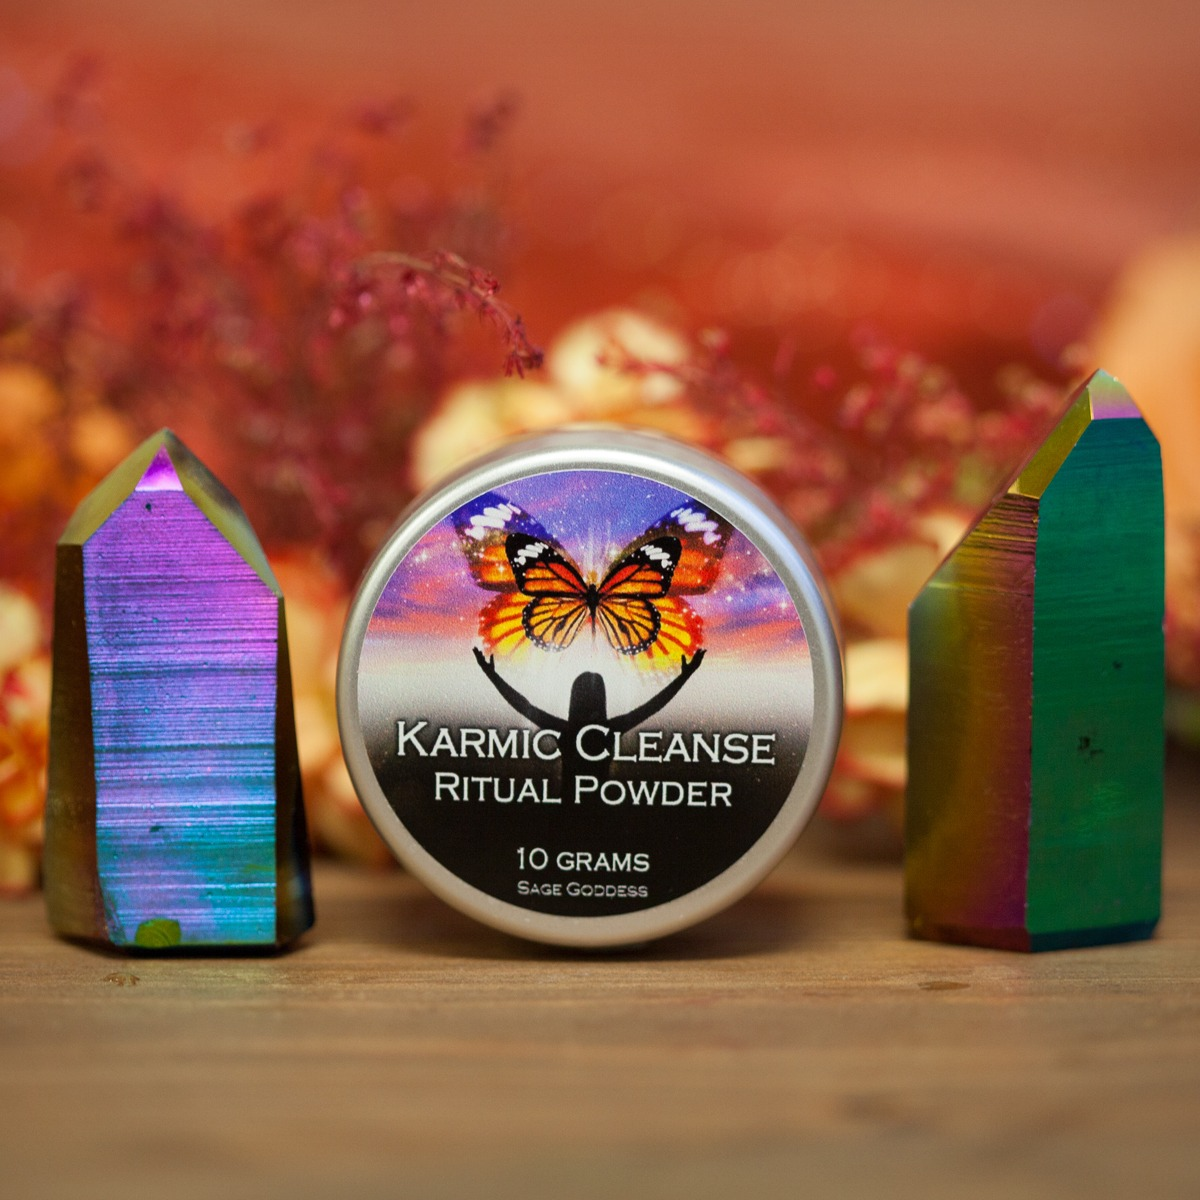 A ritual of karmic cleansing at home